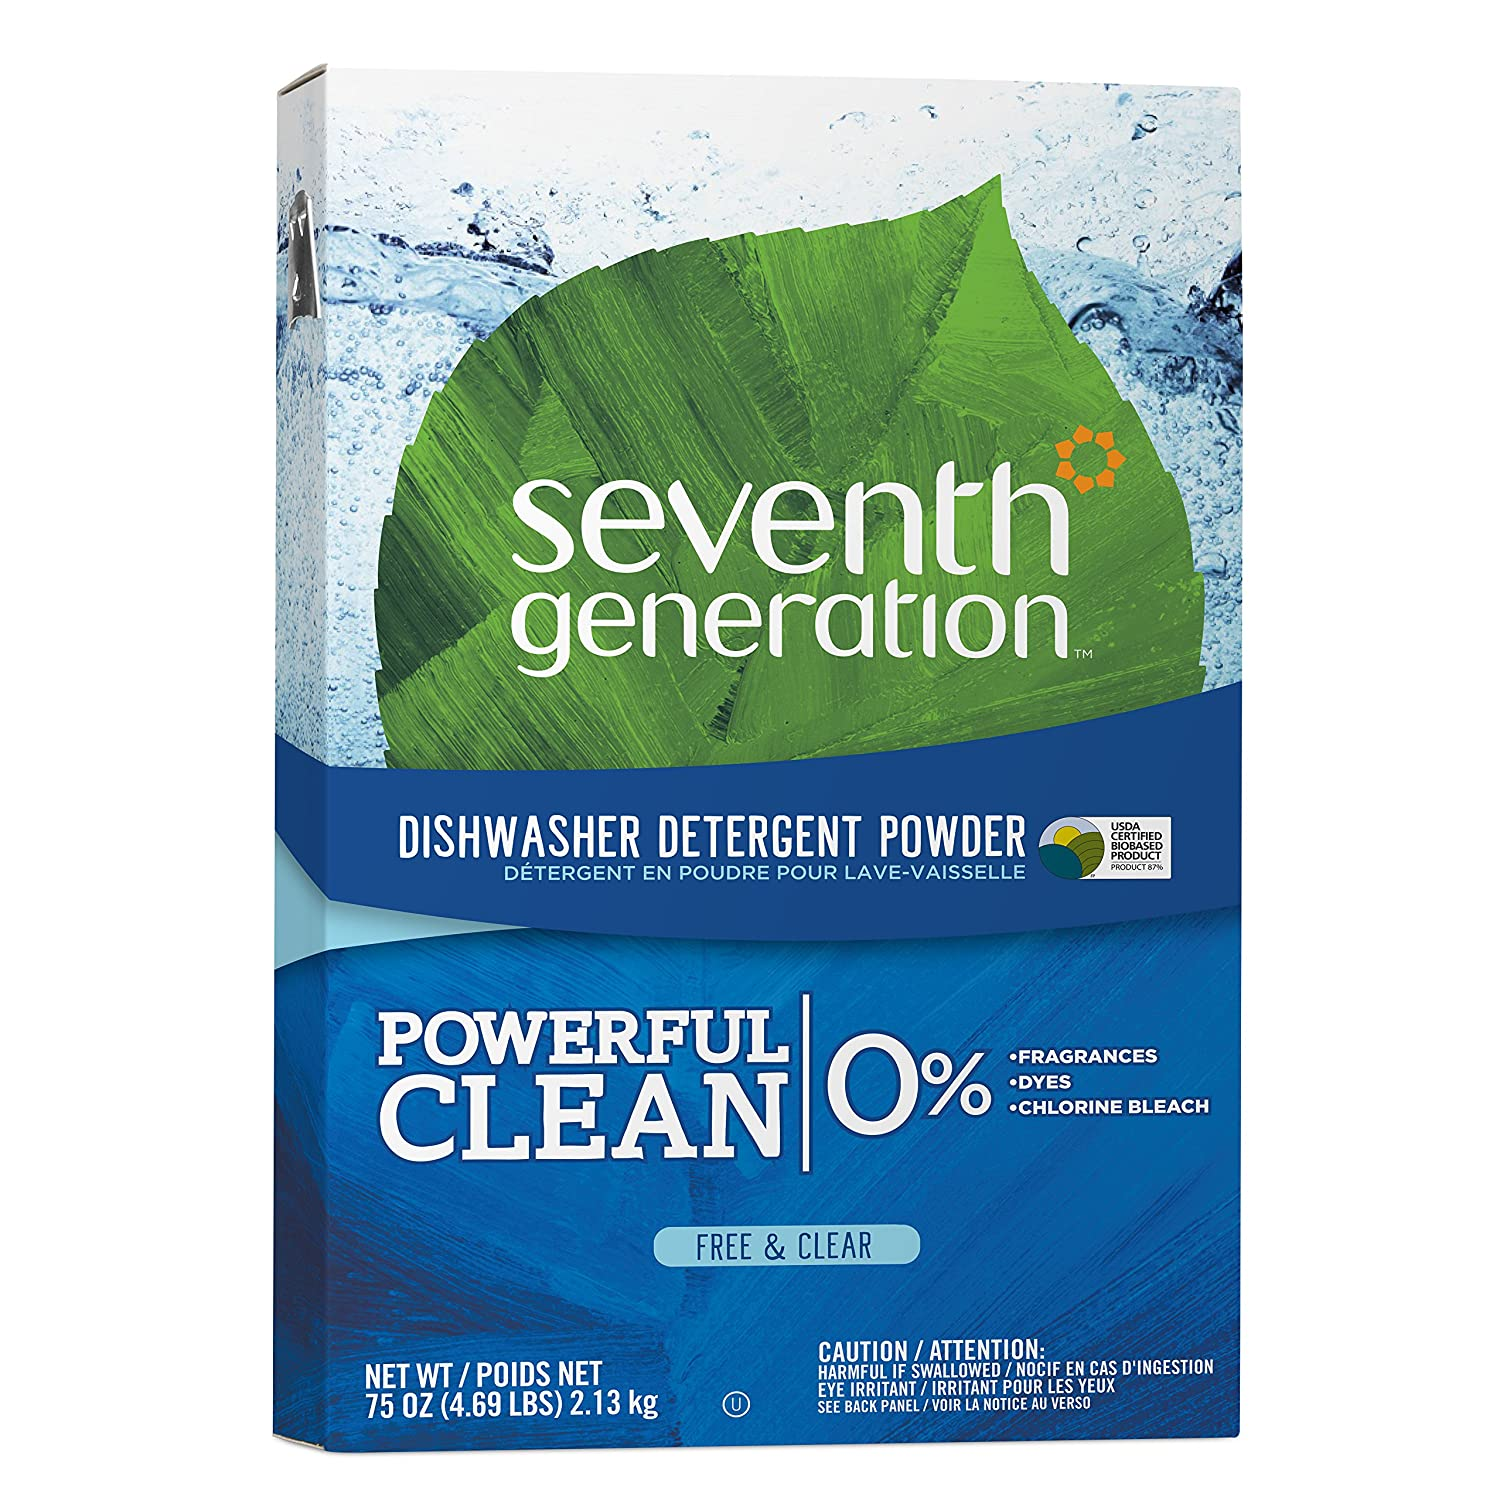 Seventh Generation Dishwasher Detergent Powder, Free & Clear, 75 oz